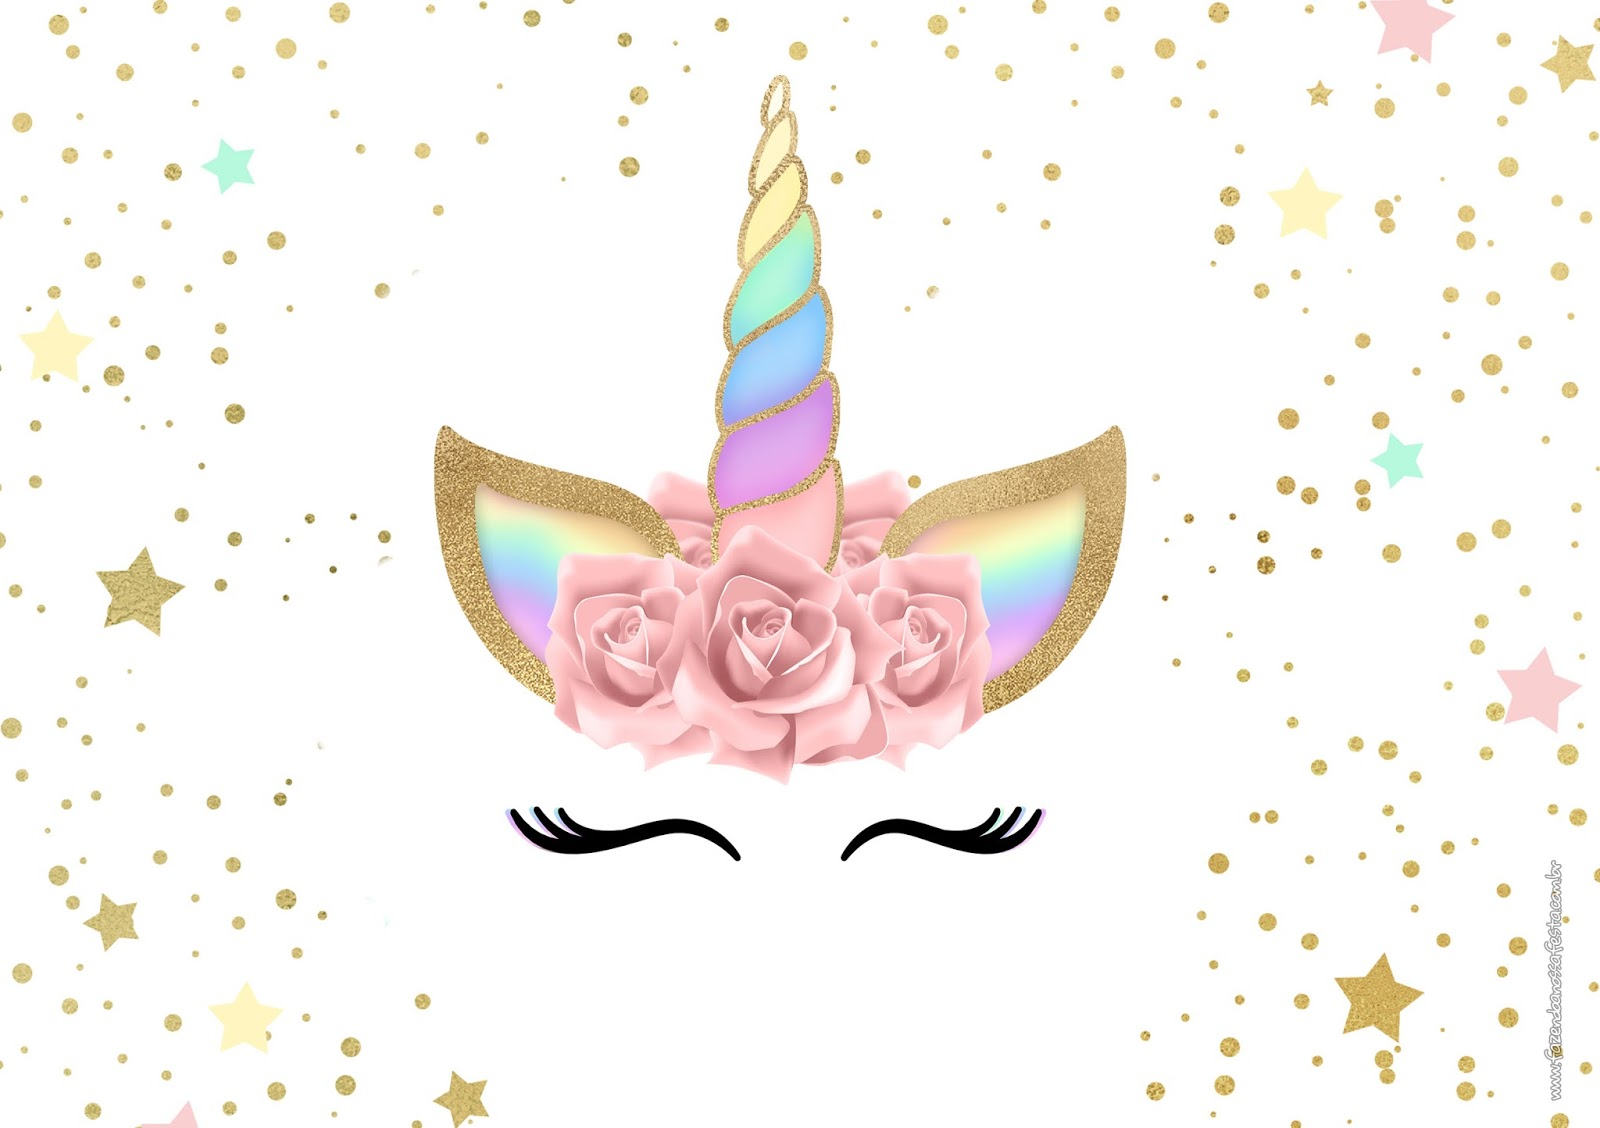 image relating to Free Printable Unicorn Invitations identified as Unicorn with Rainbow: Cost-free Printable Invites. - Oh My